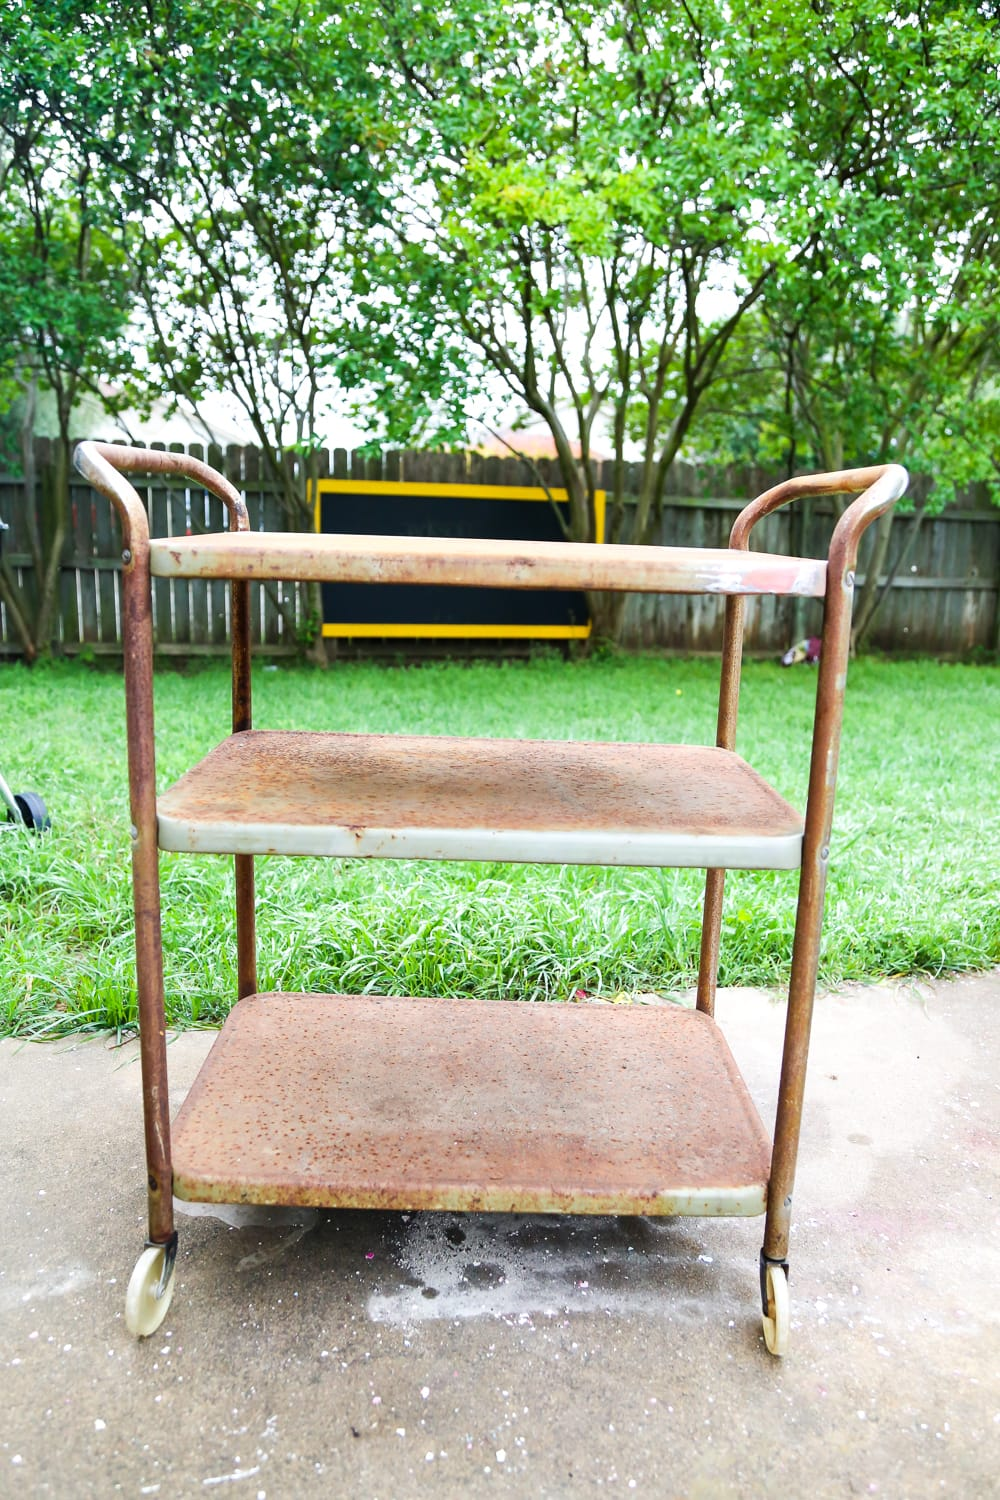 How to transform a rusty old bar cart using Rustoleum's line of rust-stopping primer and spray paint. Great ideas for rusty furniture makeovers!